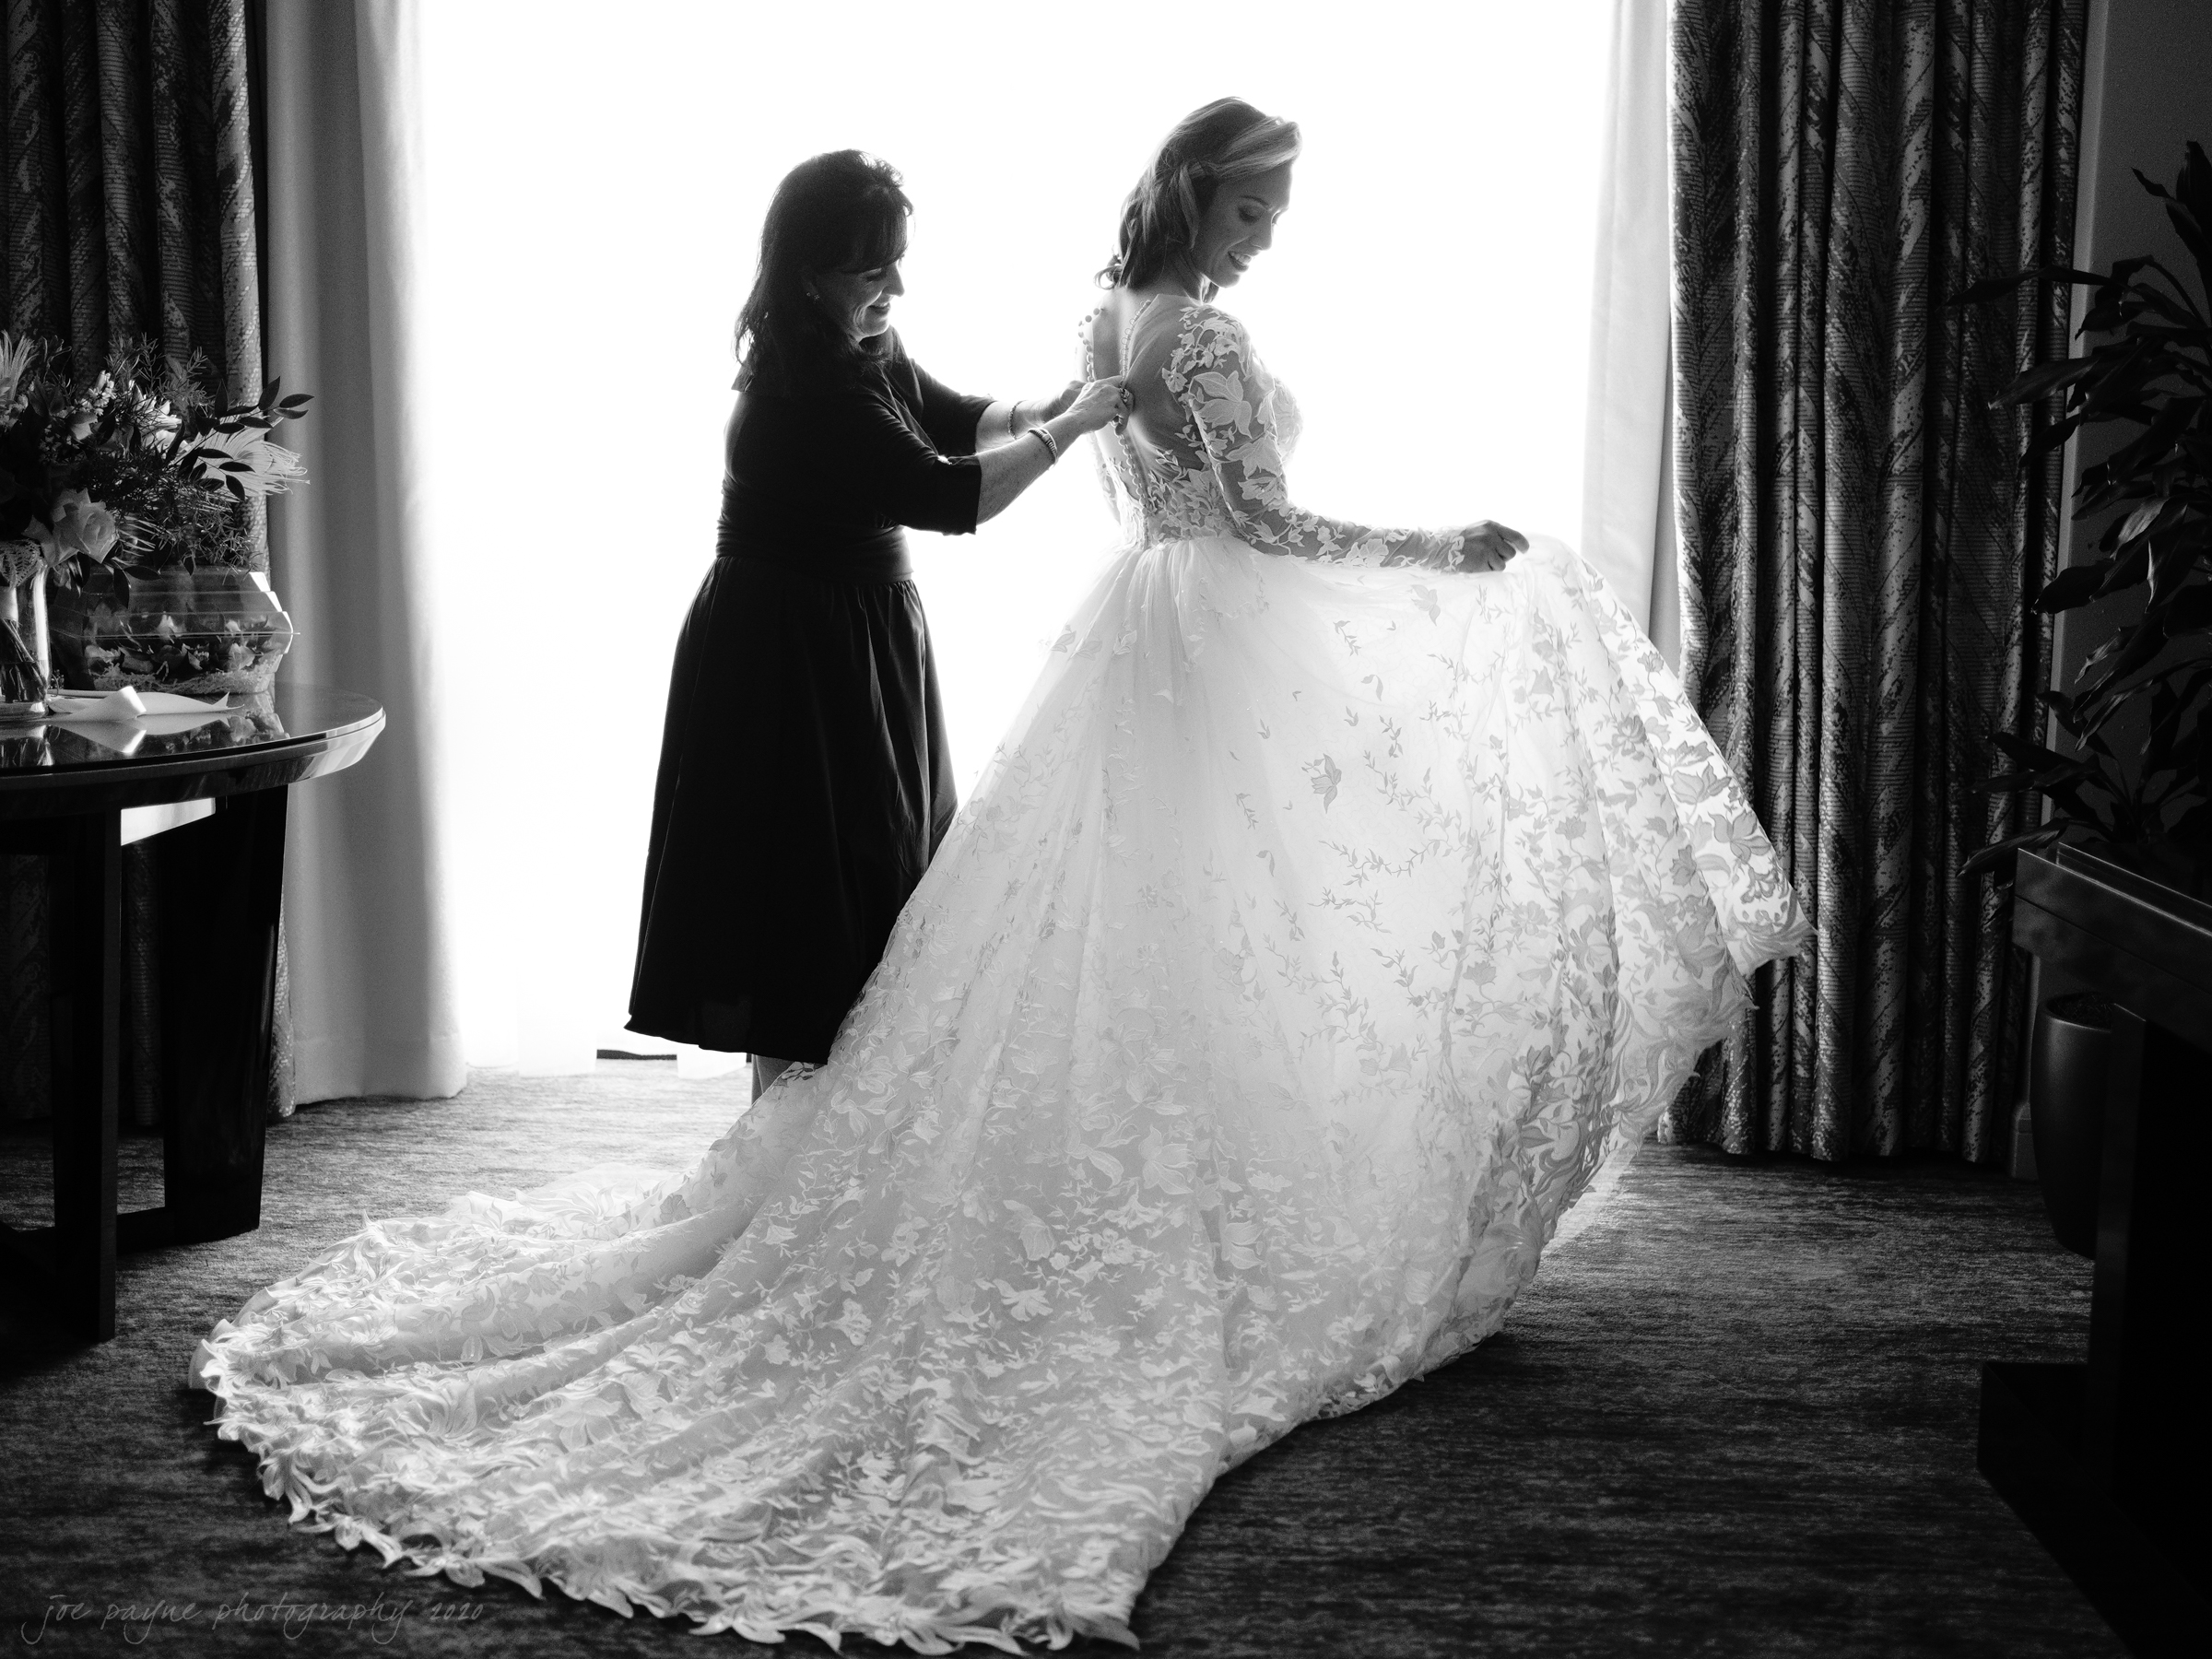 umstead hotel park wedding photography brittany harrison 2